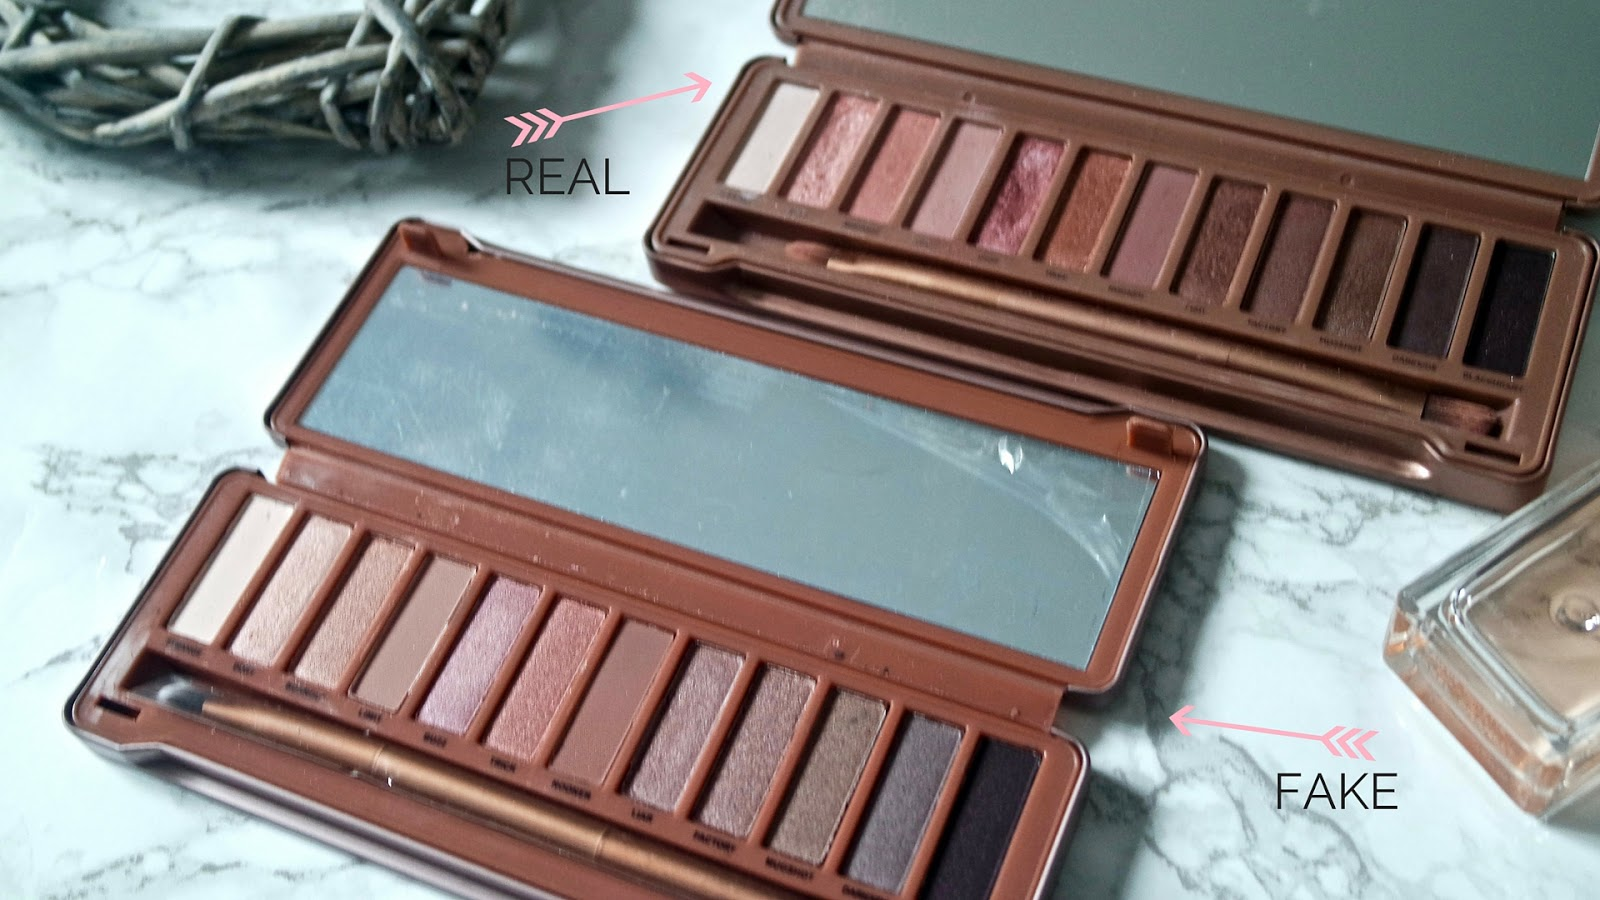 The Good, The Bad & The Fake || Urban Decay Naked 3 Palette